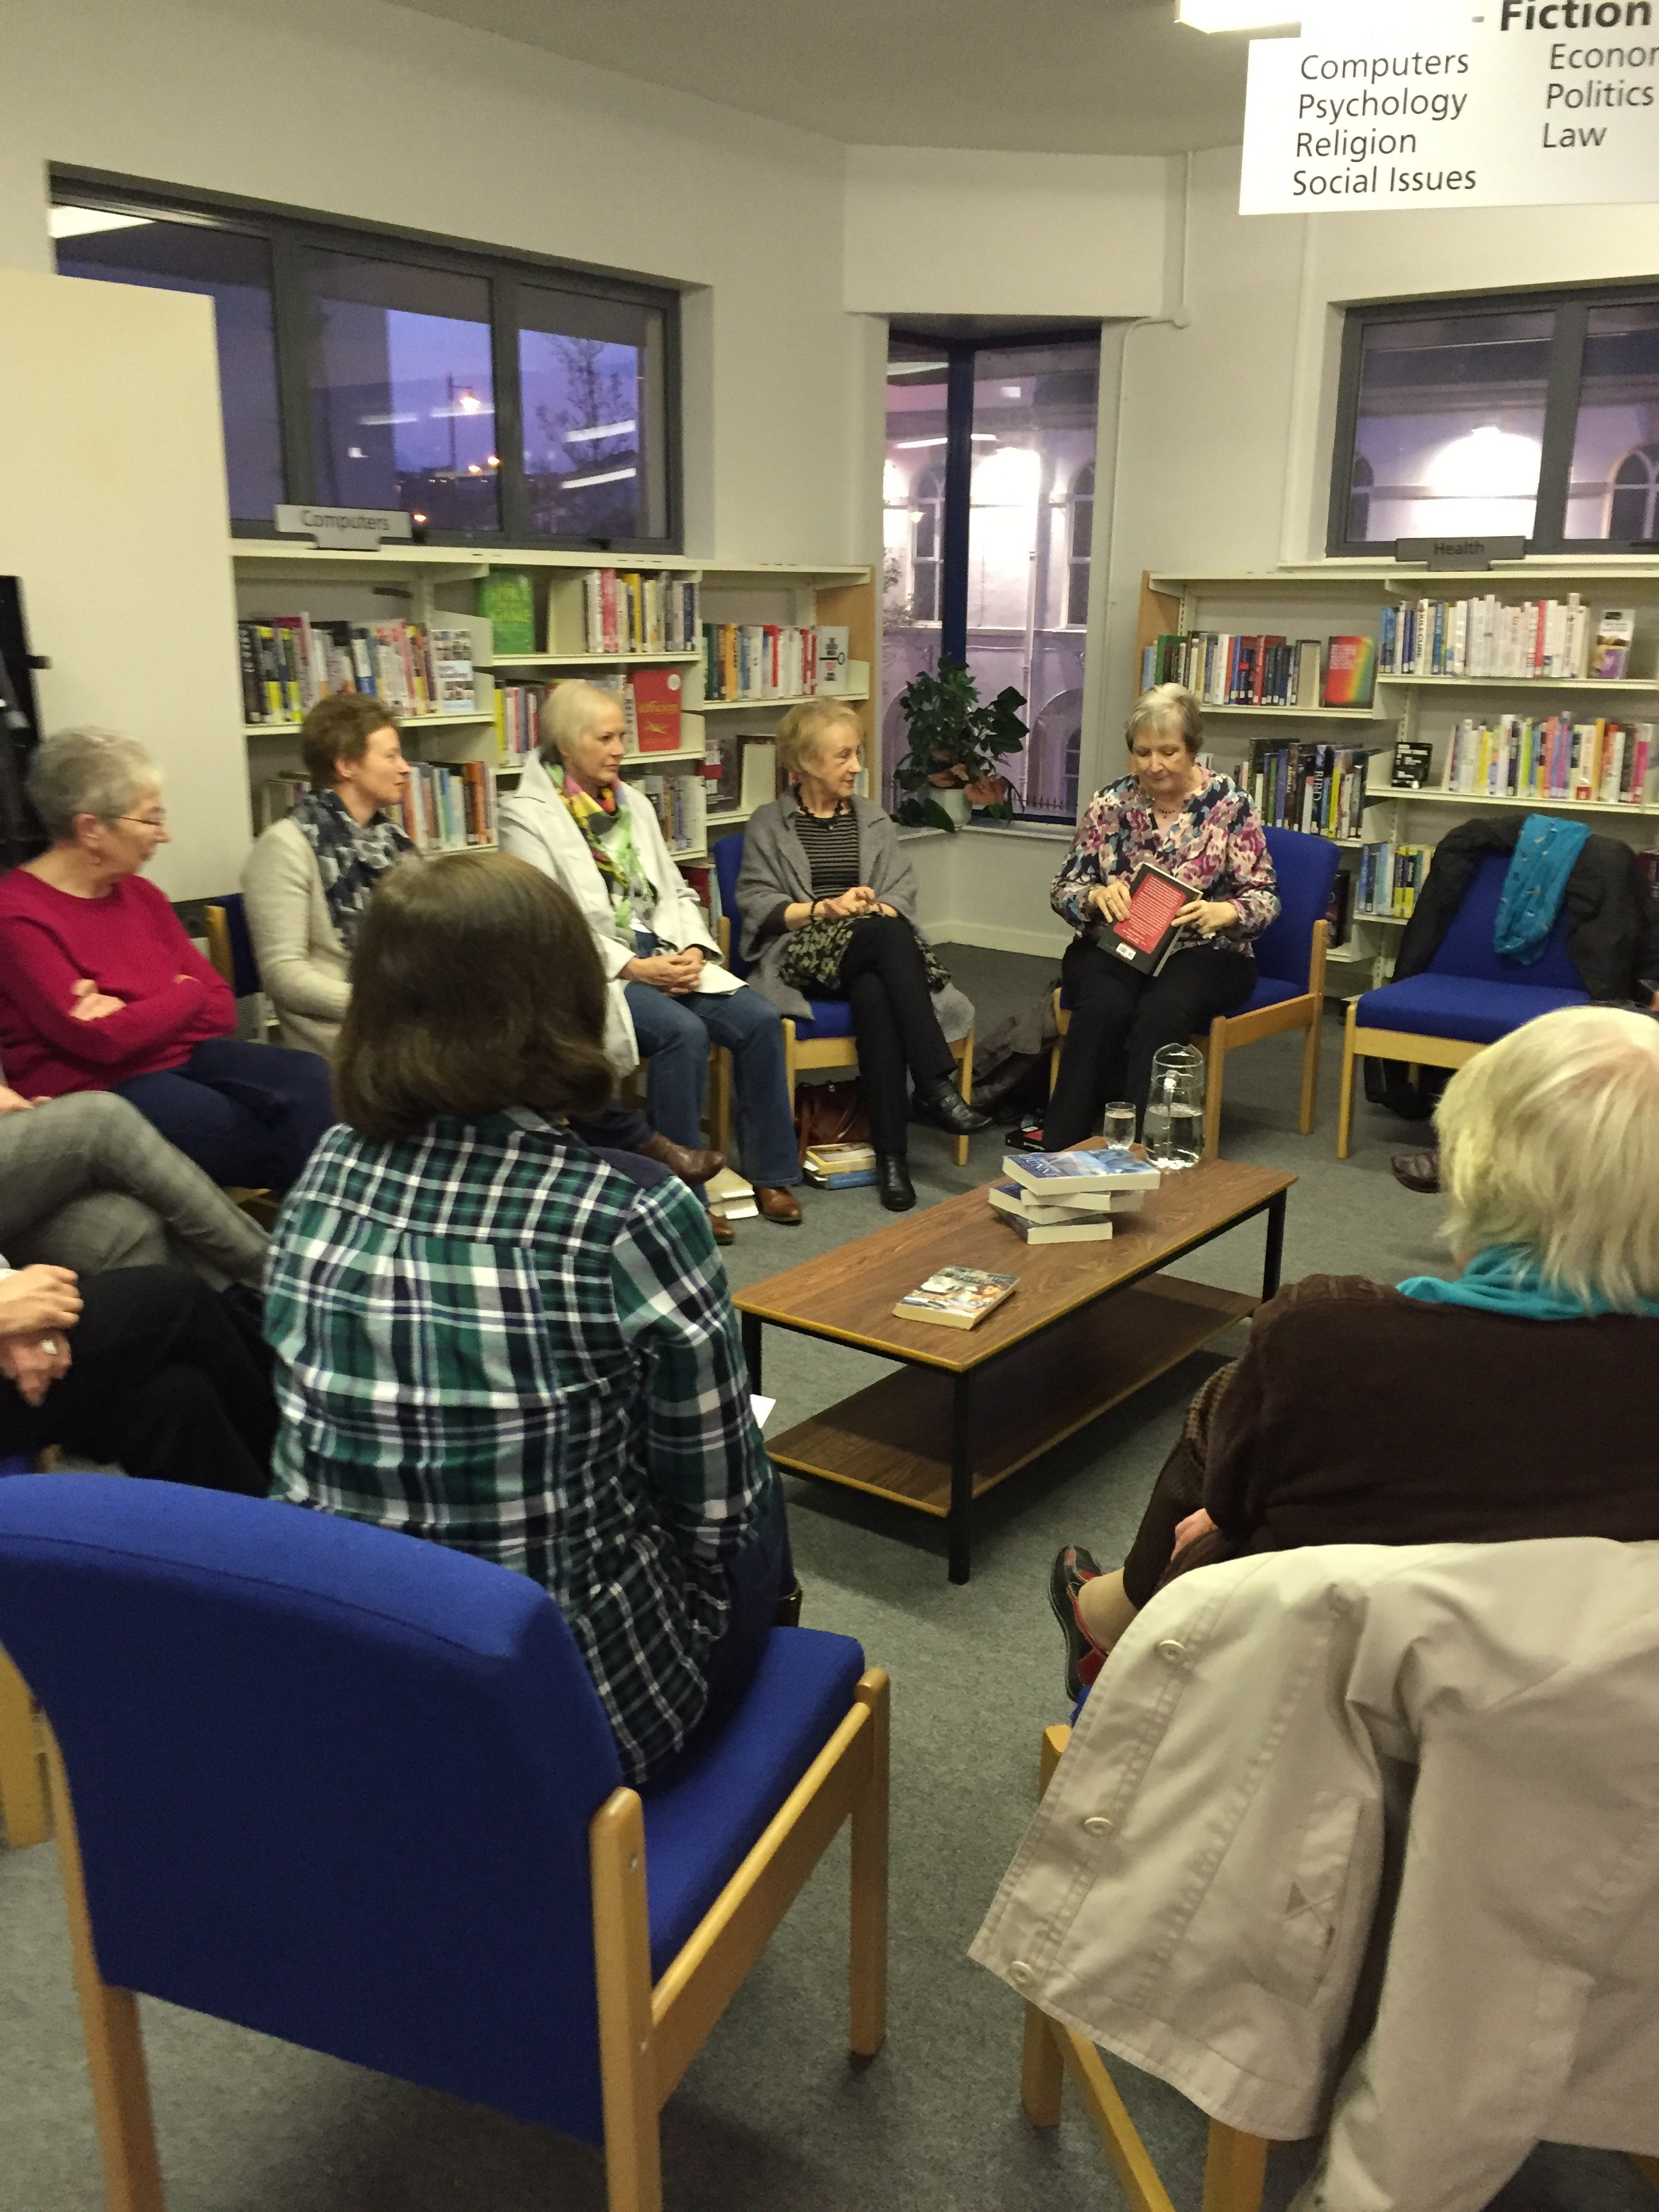 The Years that Followed / Un Terribile Amore - Nord Irlanda - Ballyclare Book Club 2 on 15 March 2016